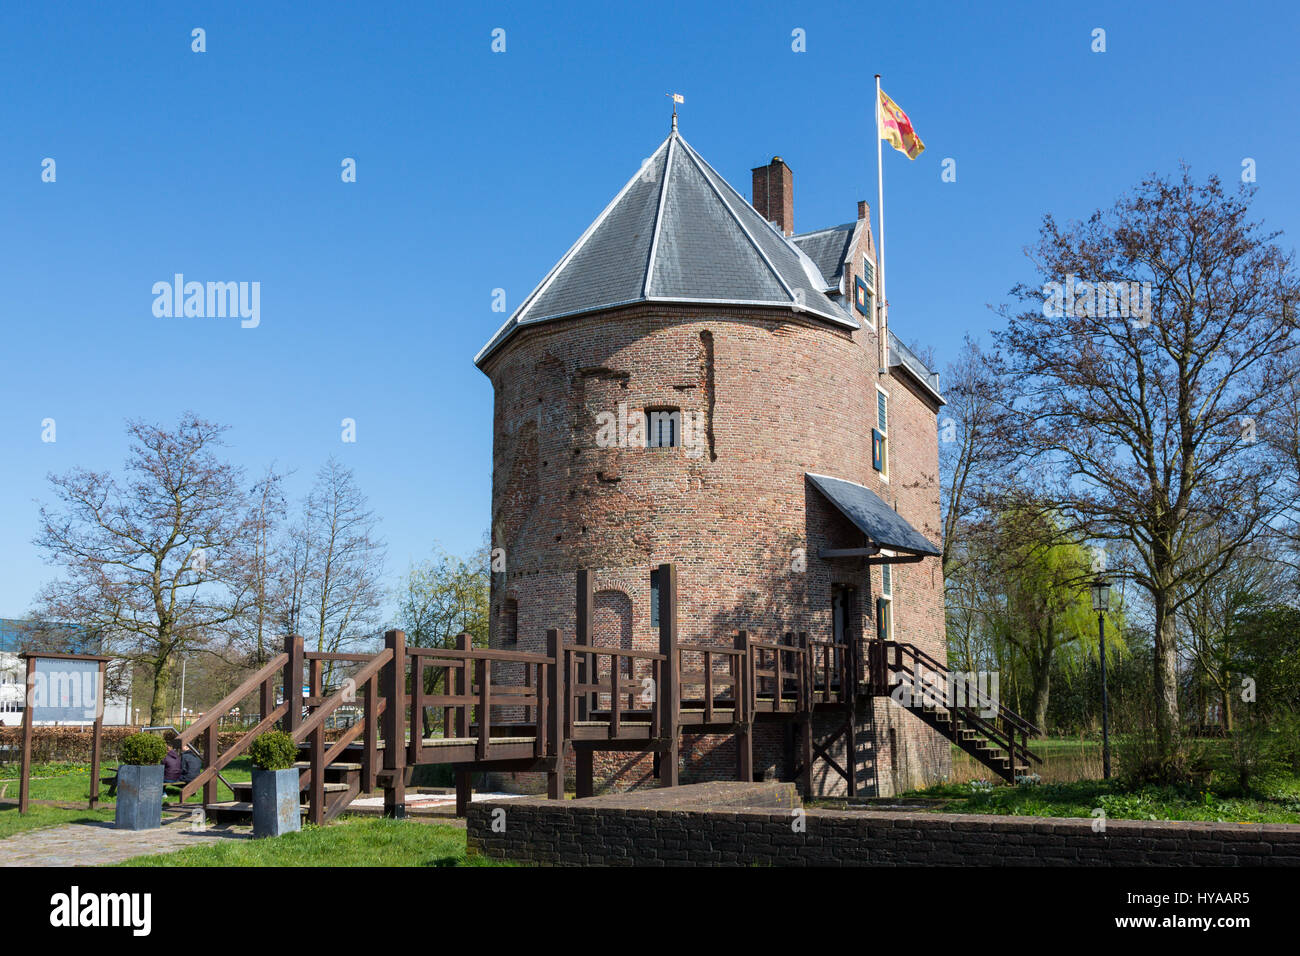 The house Dever in Lisse is an medieval house build in the 14th century by Reinier Dever. The old building is unique - Stock Image